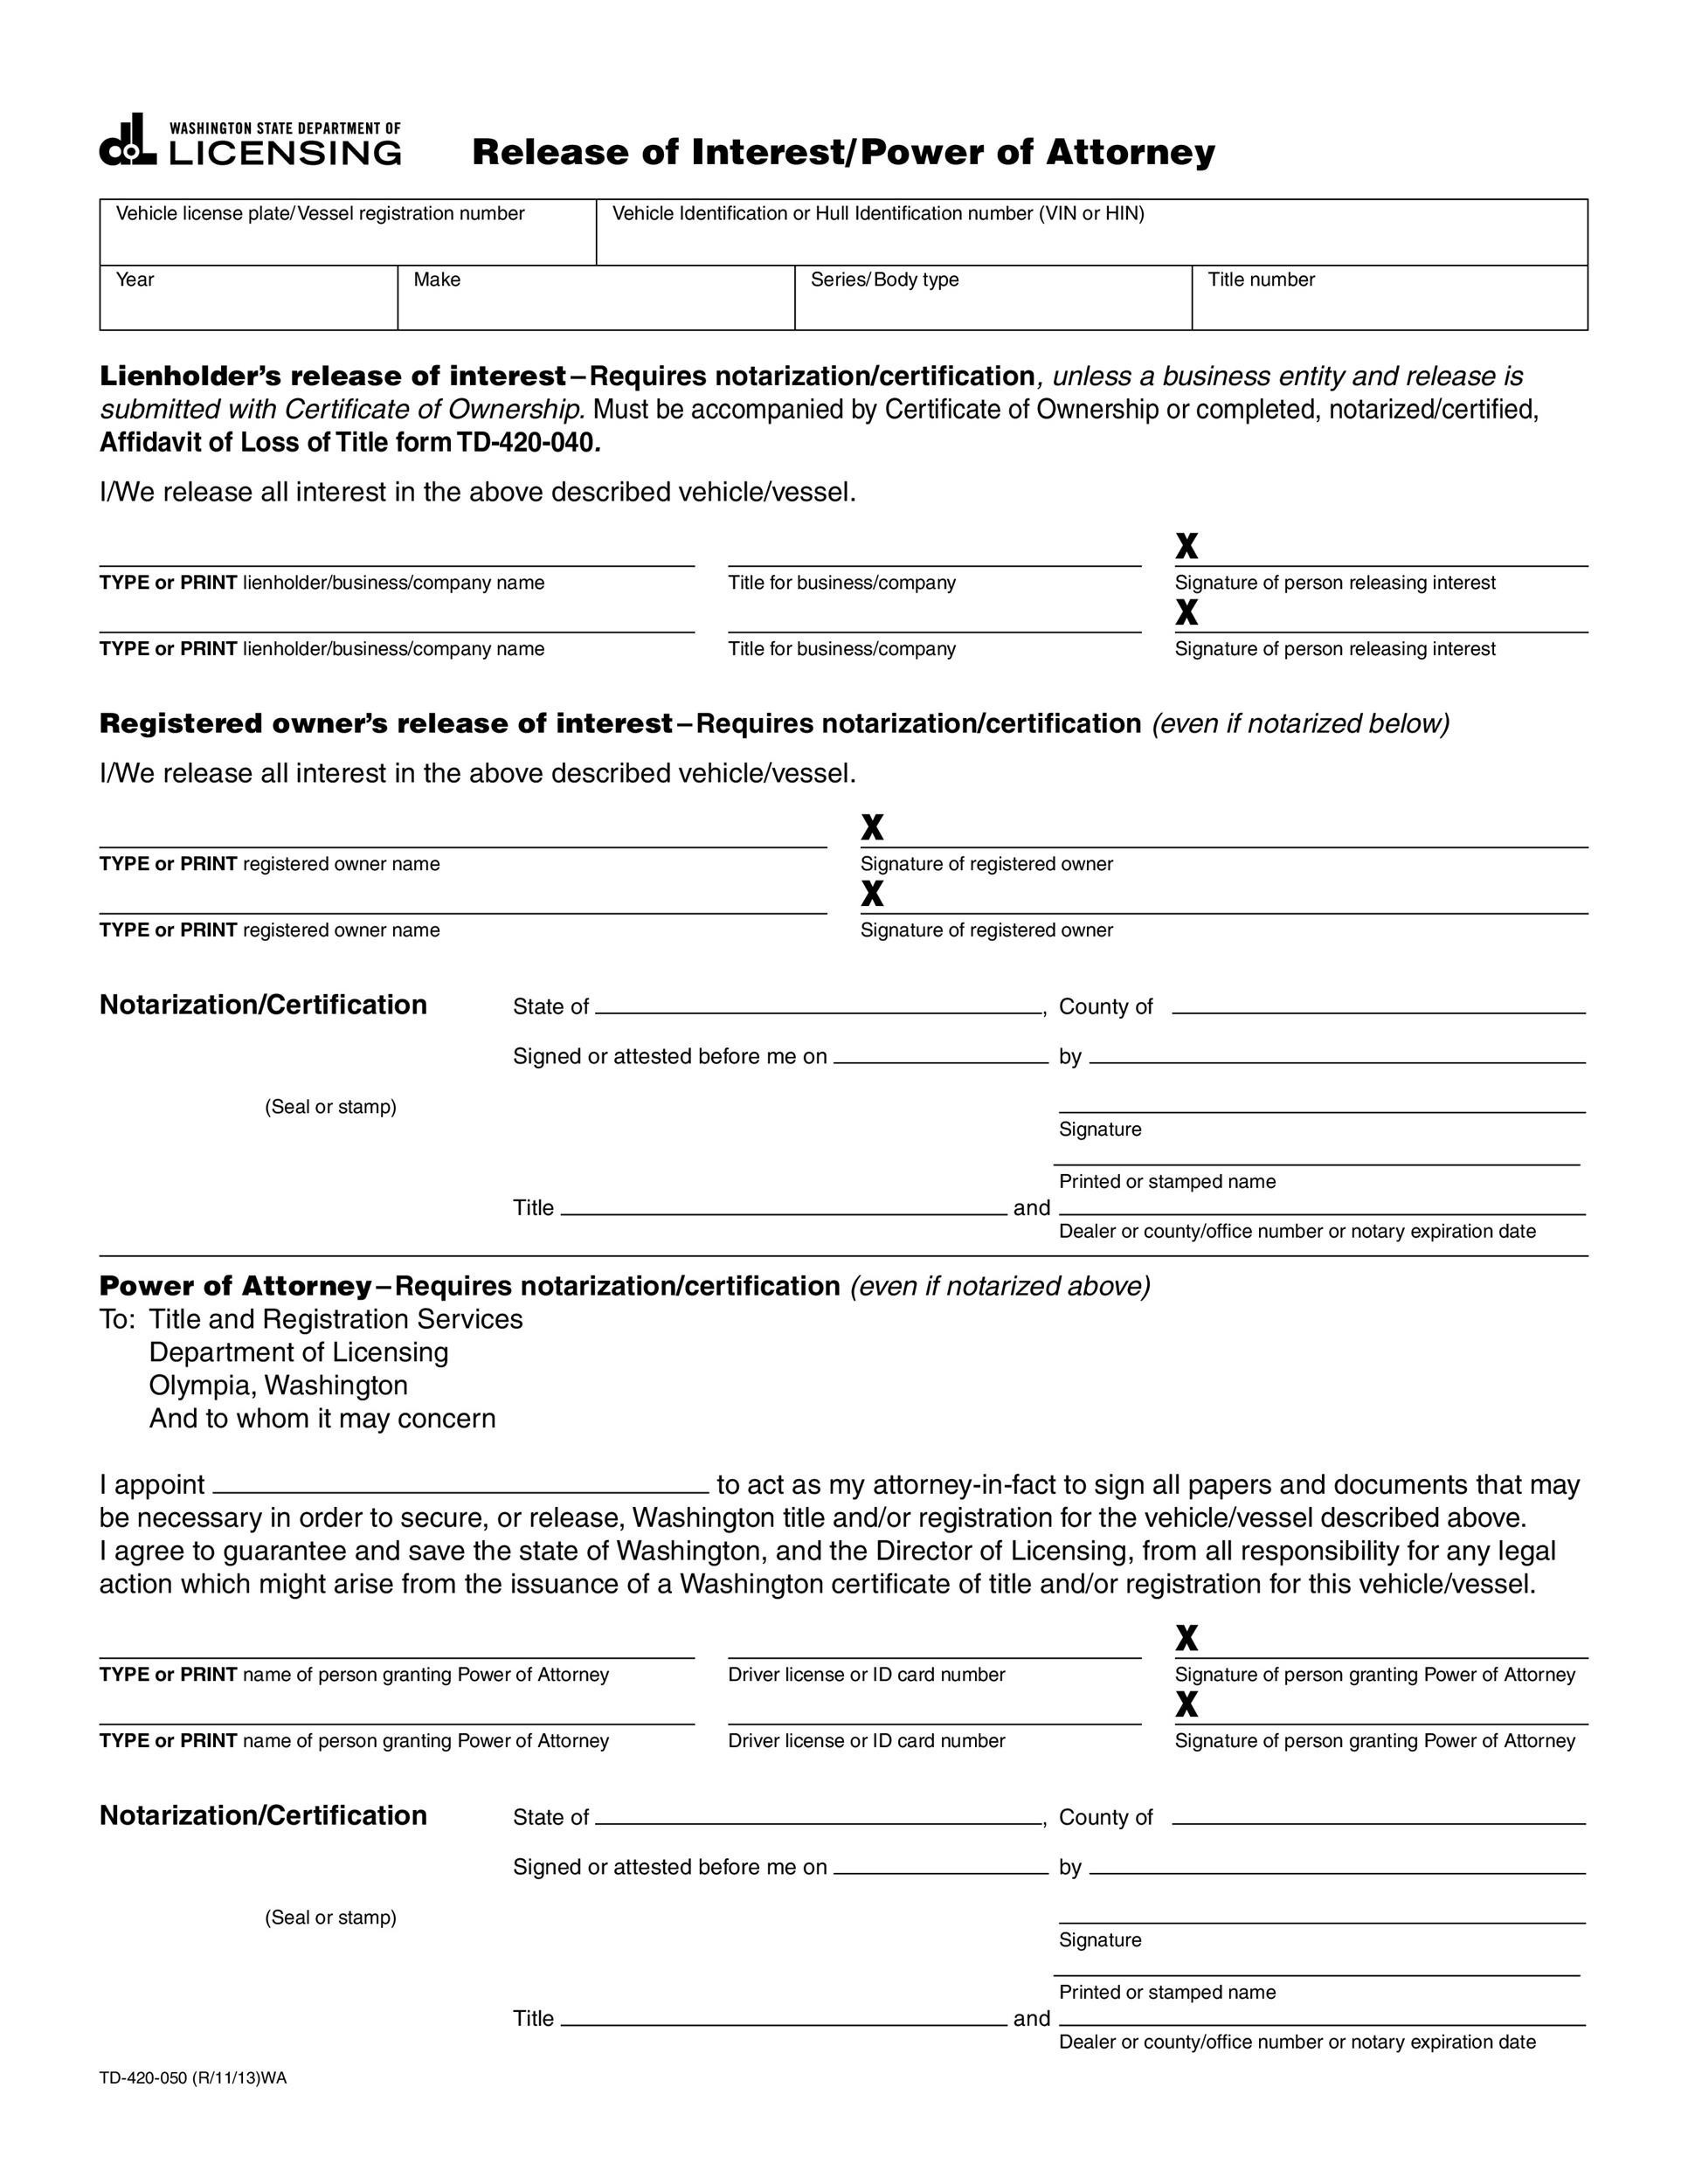 50 Free Power of Attorney Forms & Templates (Durable, Medical,General)